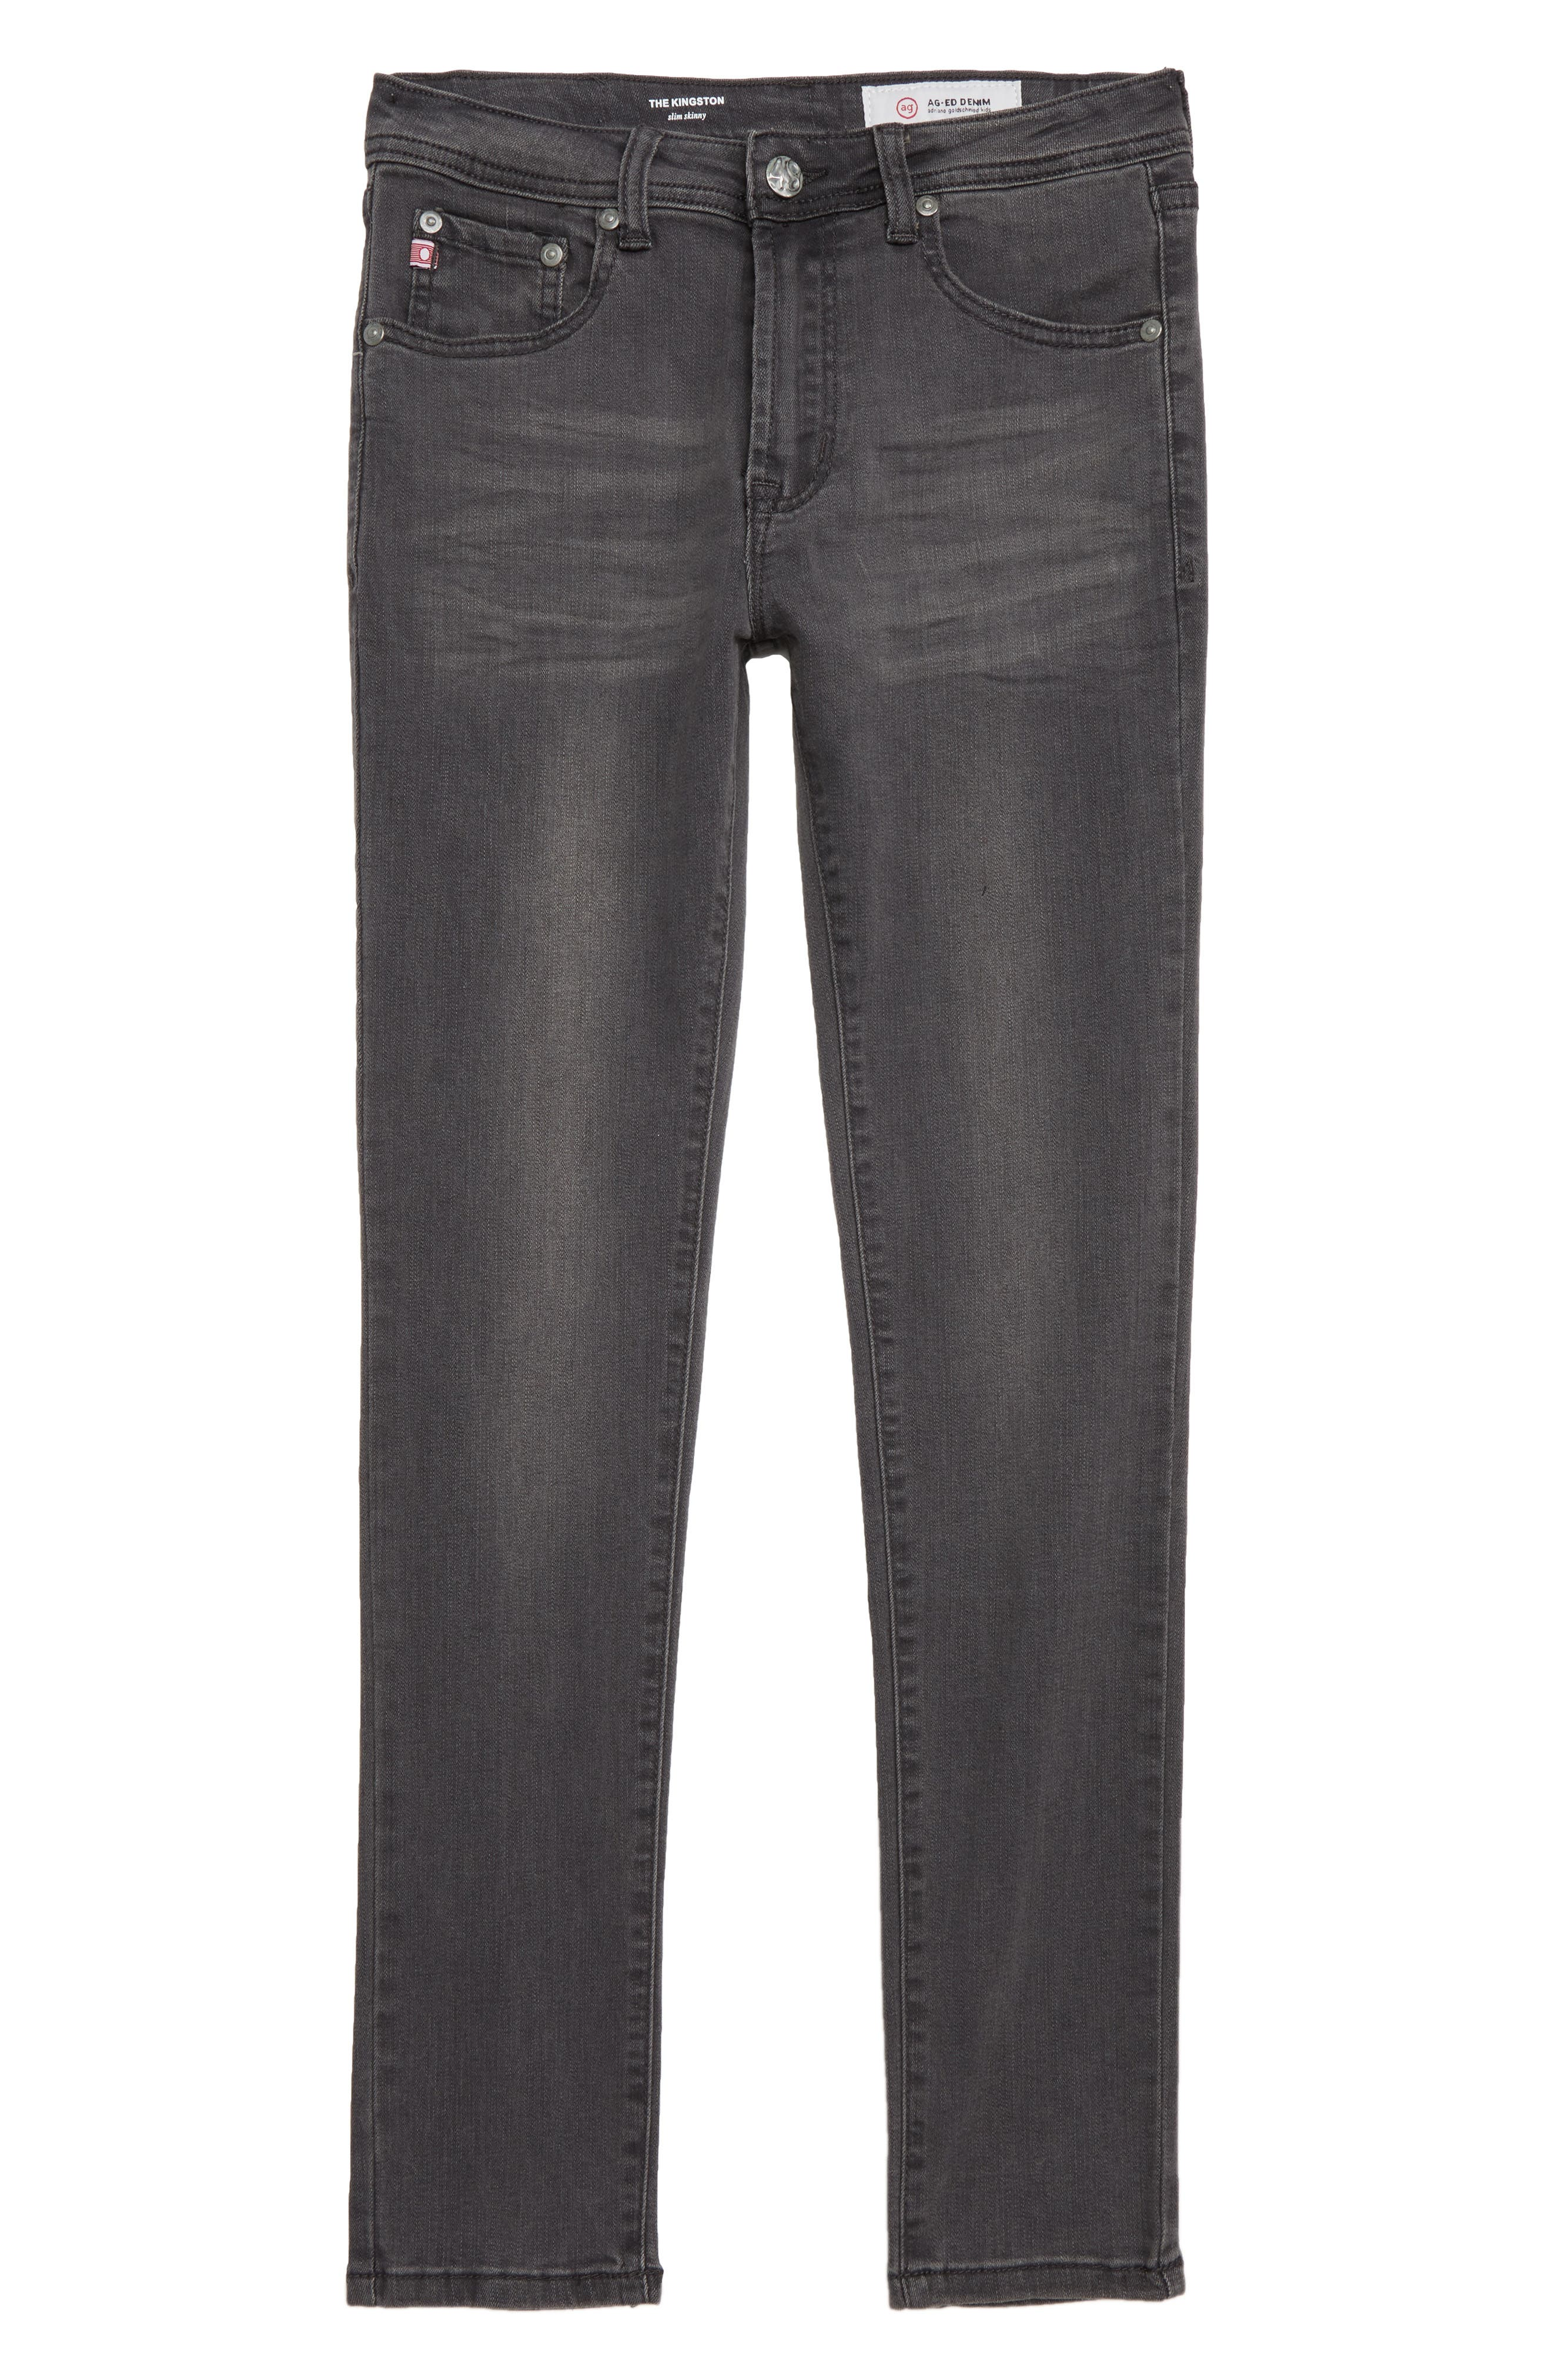 adriano goldschmied kids The Kingston Slim Jeans,                             Main thumbnail 1, color,                             FOG GREY